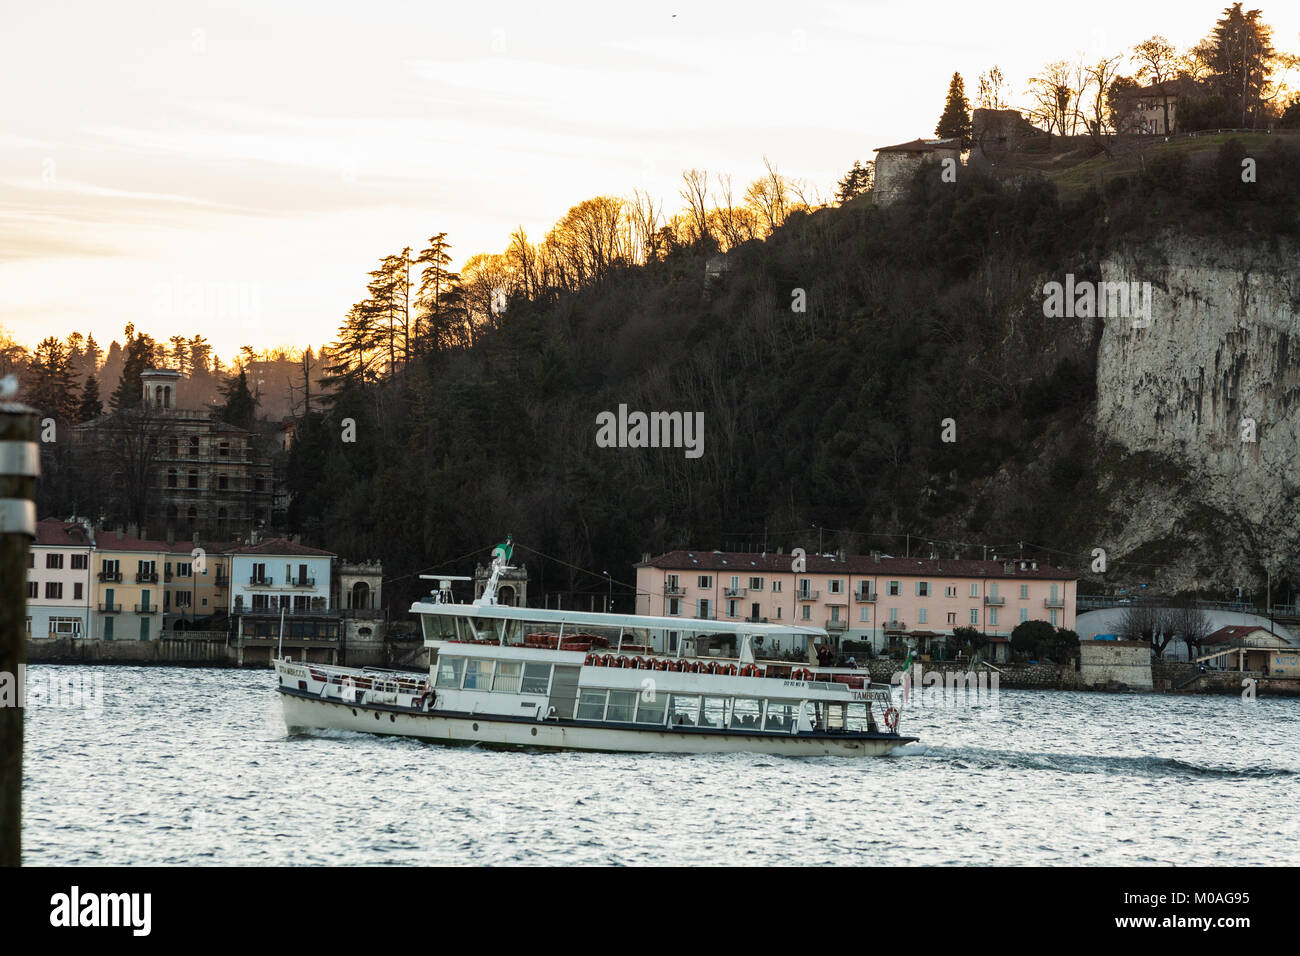 Lakefront at sunset, Lago Maggiore, Angera, Varese, Lombardia, Italy - Stock Image